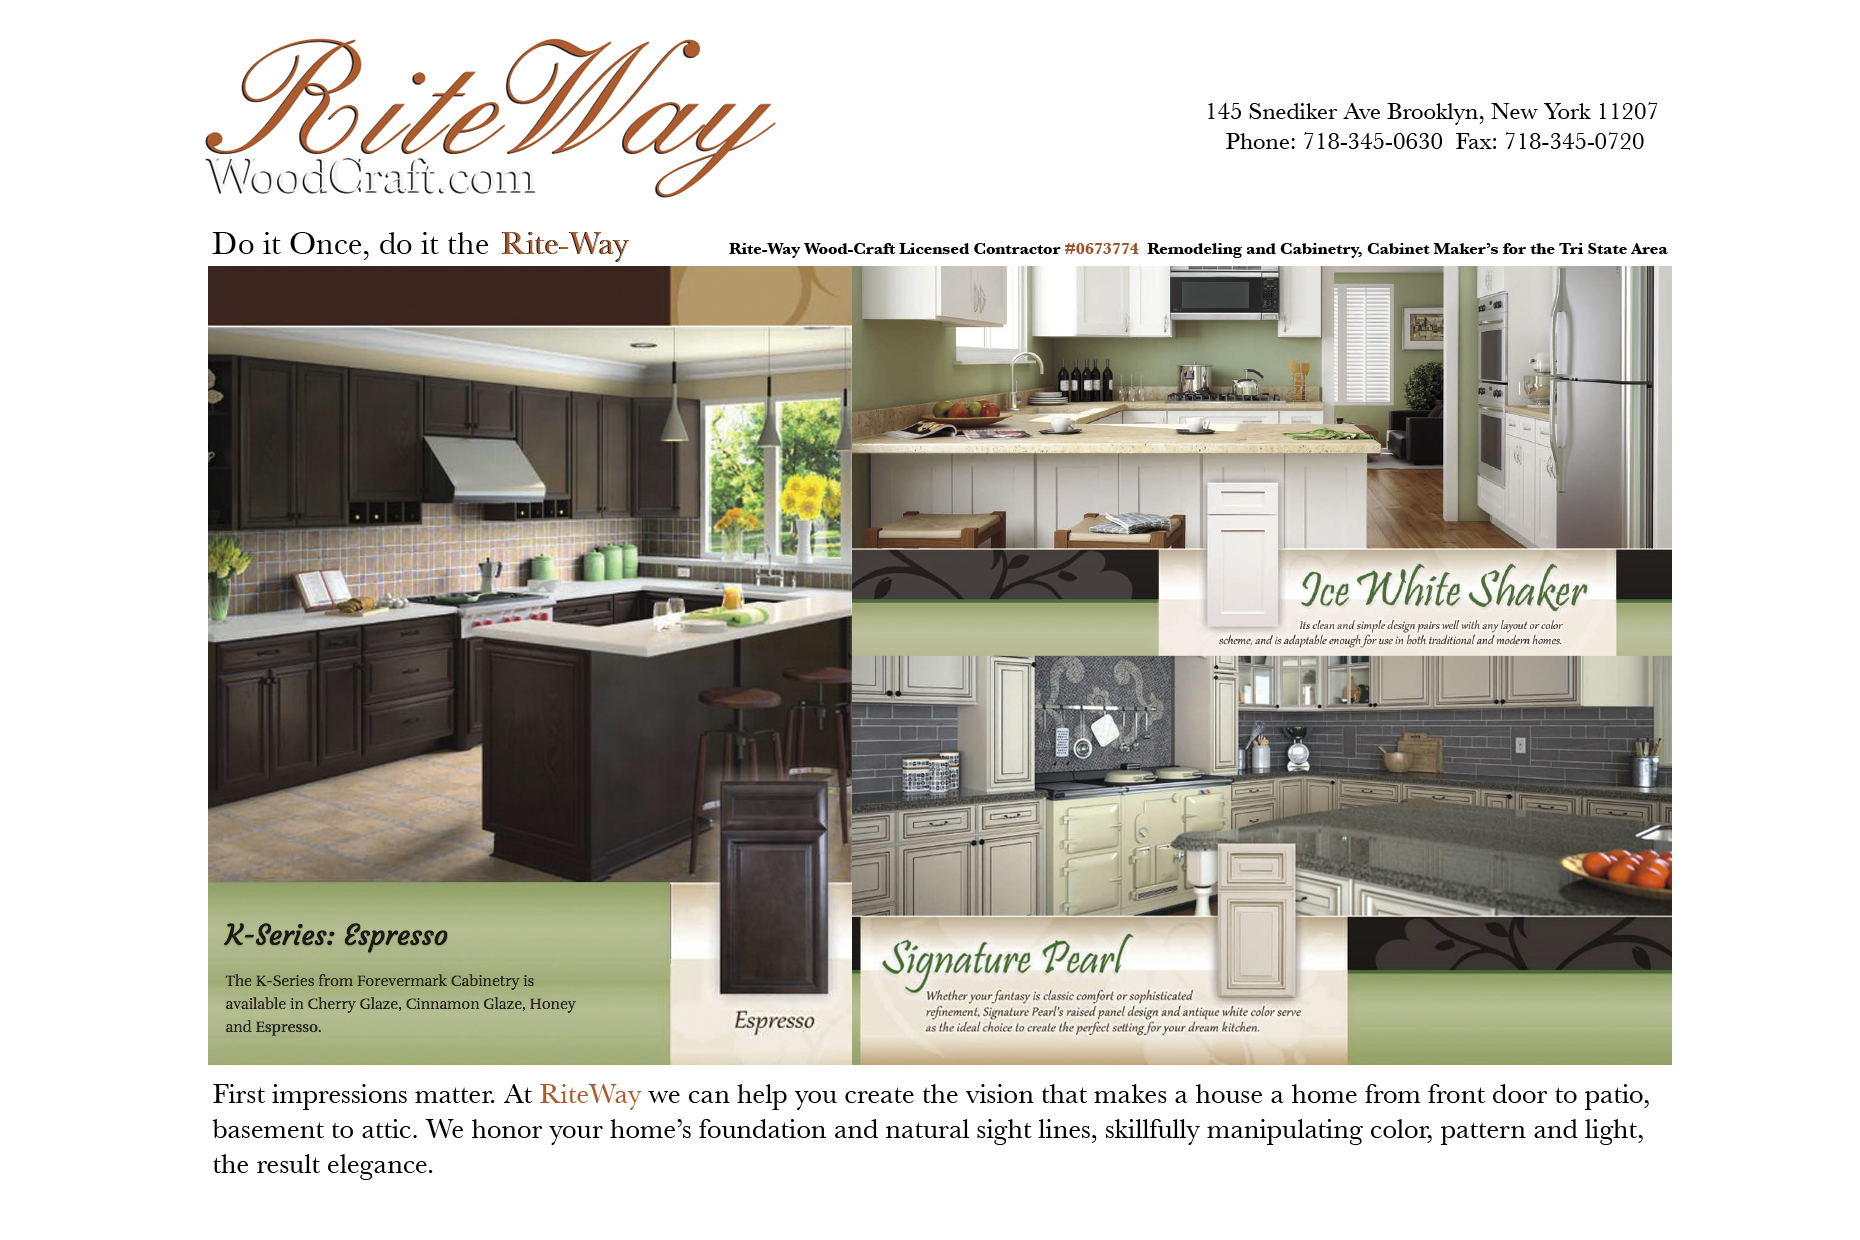 Rite-Way Wood-Craft Licensed Contractor Remodeling and Cabinetry, Cabinet Maker's for the Tri State Area